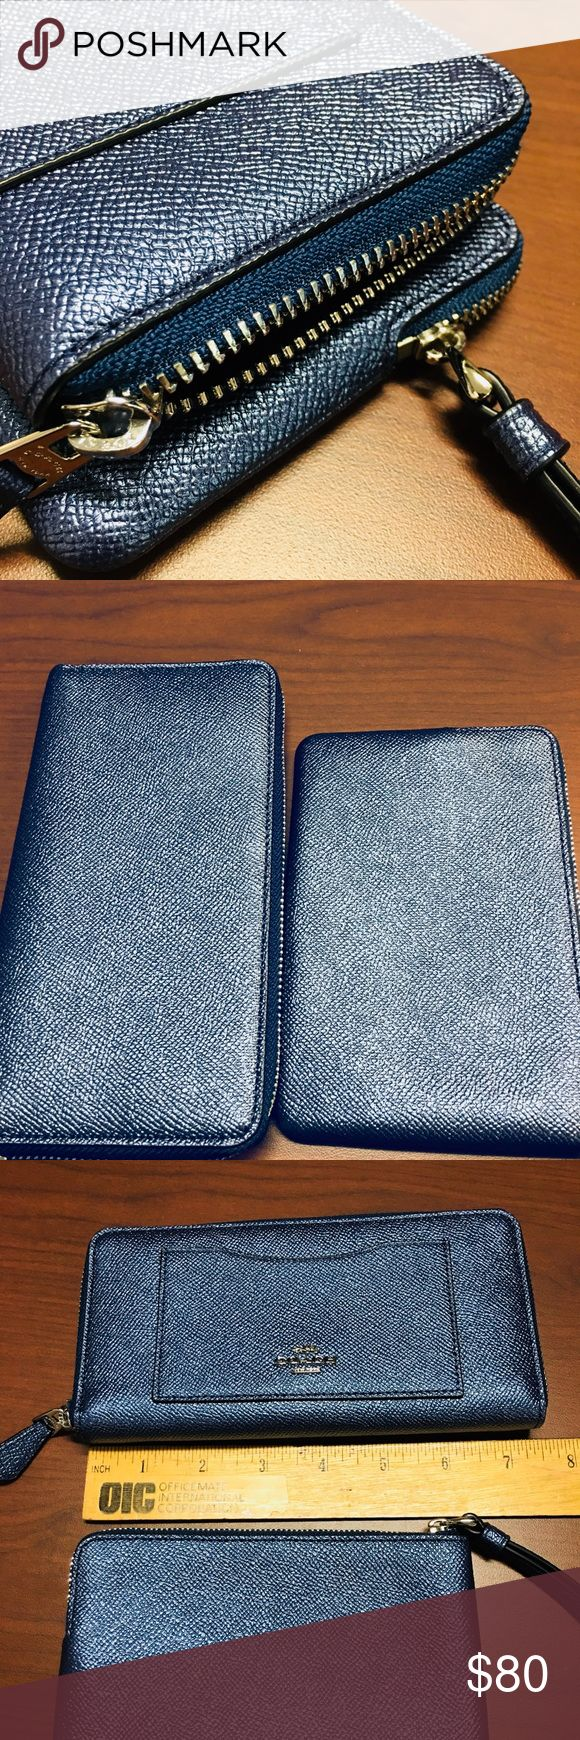 """New Coach Glitter leather wallet & wristlit Comes from a pet and smoke free home  Glitter crossgrain leather 12 credit card slots Full-length bill compartments Zip coin pocket Zip-around closure 7 1/2"""" (L) x 4"""" (H) x 3/4"""" (W) Fits all phone sizes up to an iPhone X and Samsung S7 Edge   Glitter crossgrain leather Two credit card slots Zip-top closure, fabric lining Wrist strap attached 6 1/4"""" (L) x 4"""" (H) Fits an iPhone or Android Coach Bags Wallets"""